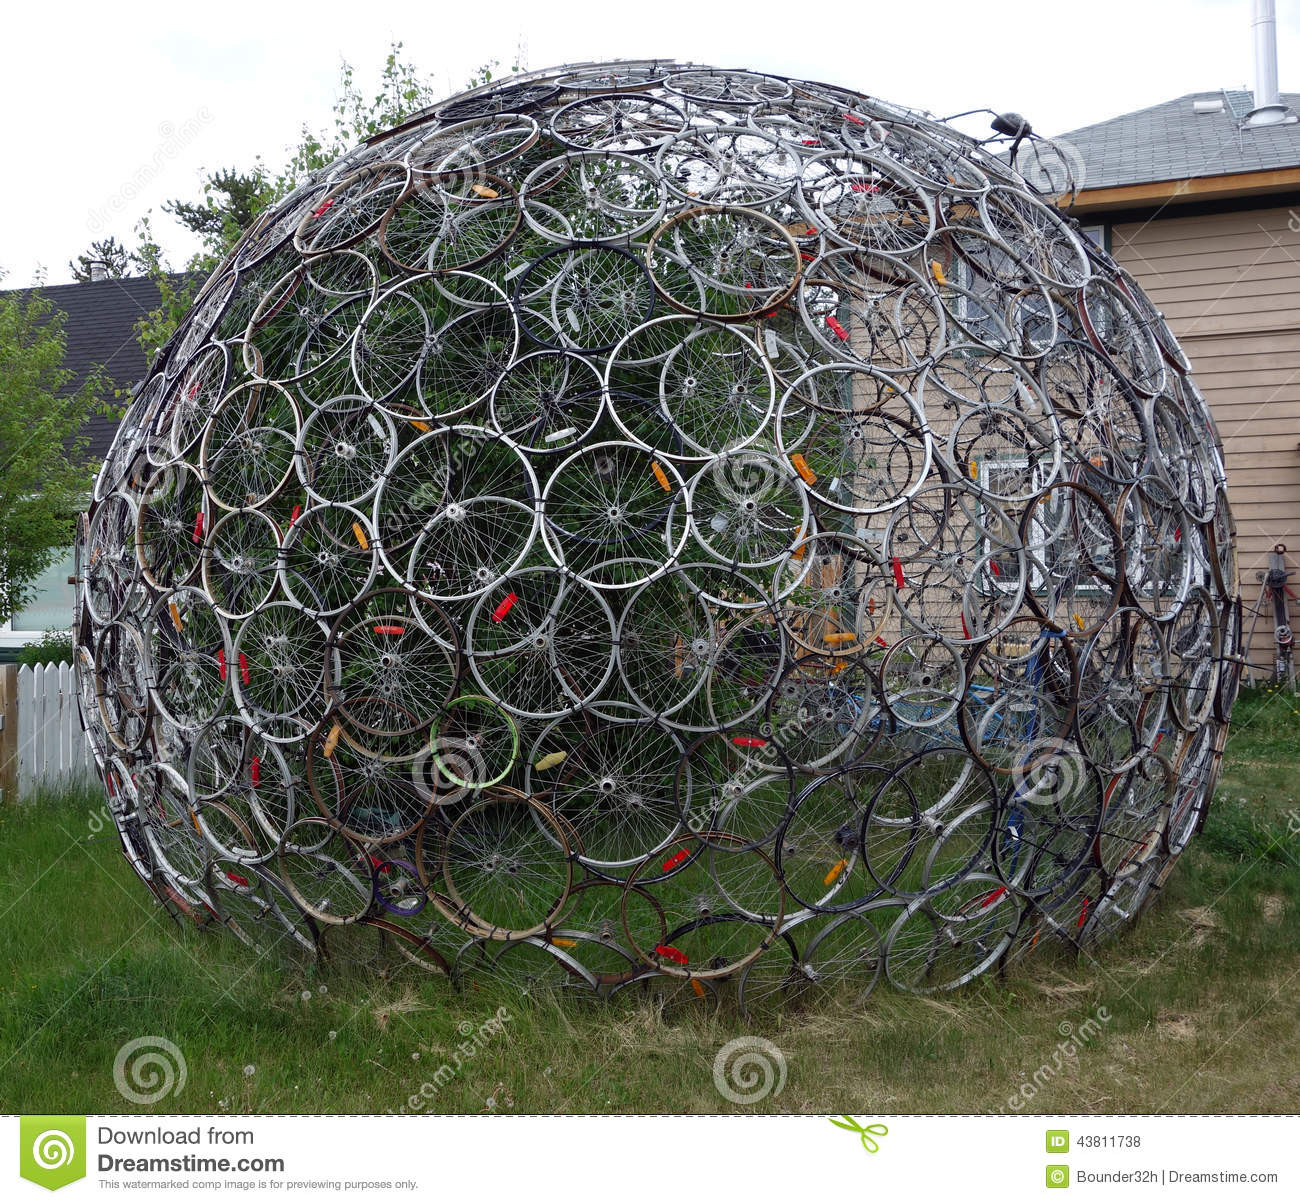 Bicycle rim yard art bing images for Used tire yard art